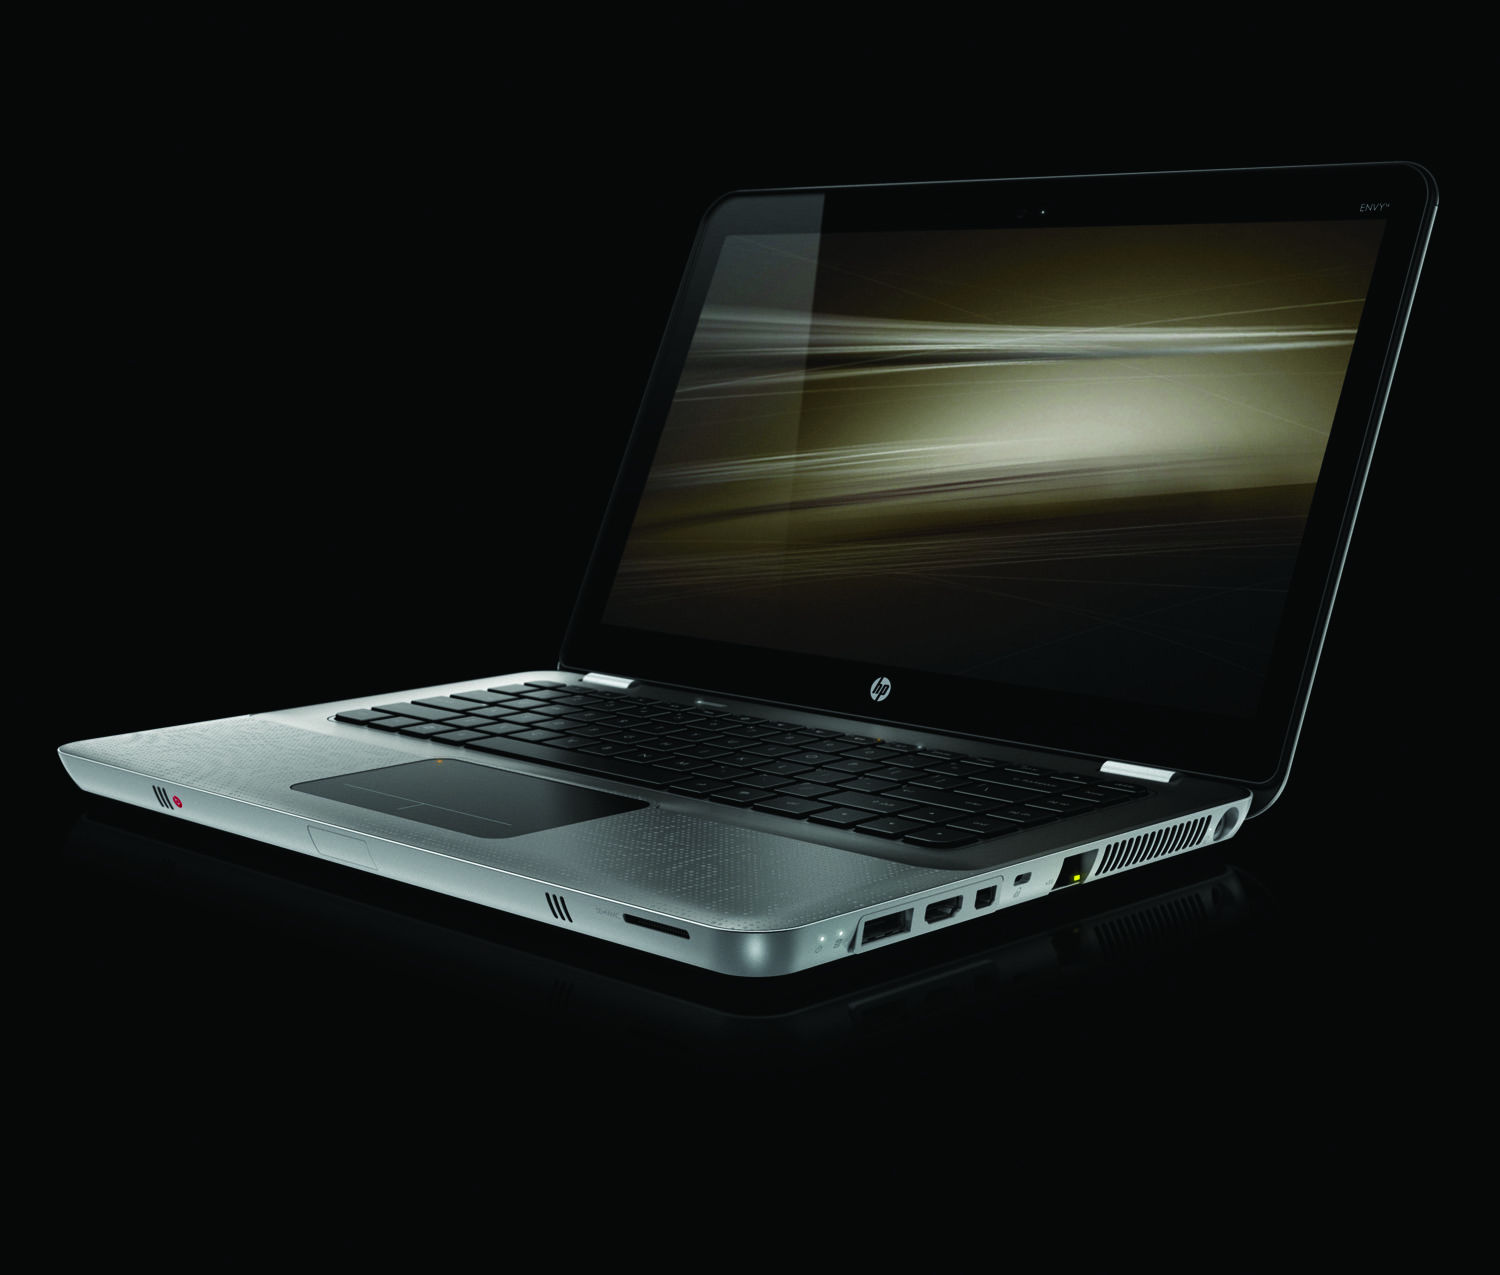 HP Envy 14, front left on black